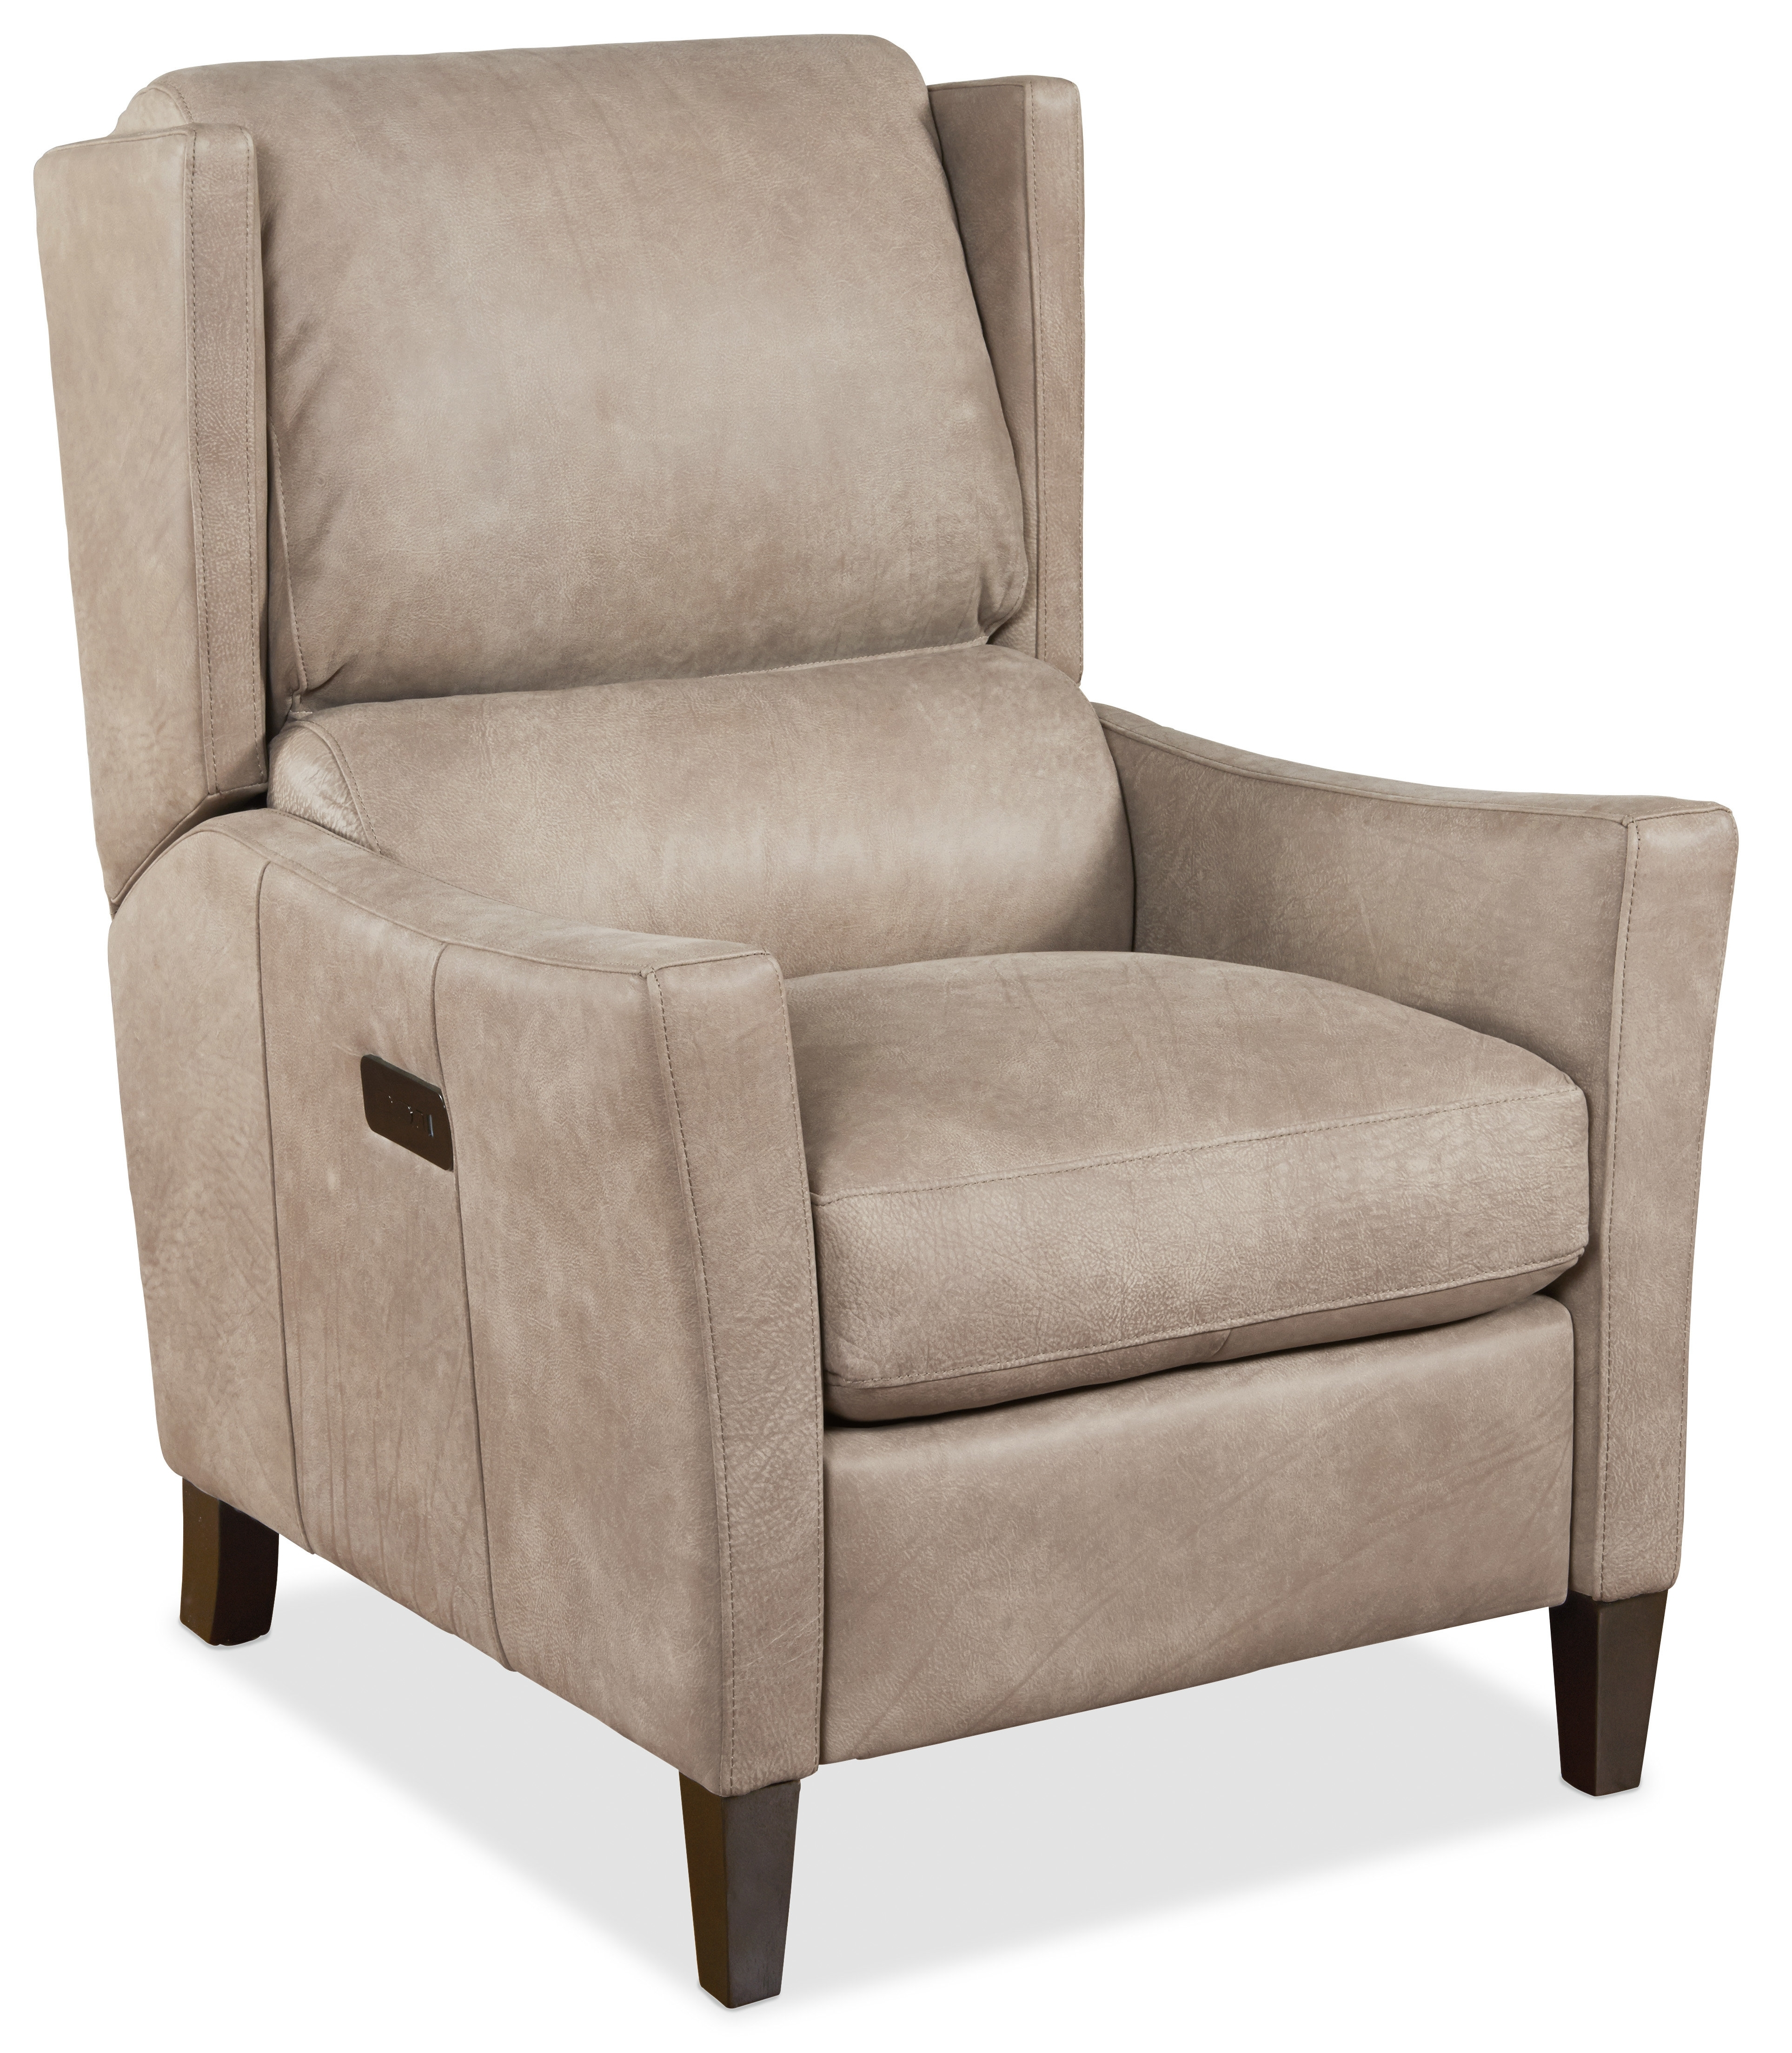 Hooker Furniture Larkin Leather Power Recliner | Wayfair regarding Clyde Grey Leather 3 Piece Power Reclining Sectionals With Pwr Hdrst & Usb (Image 15 of 30)